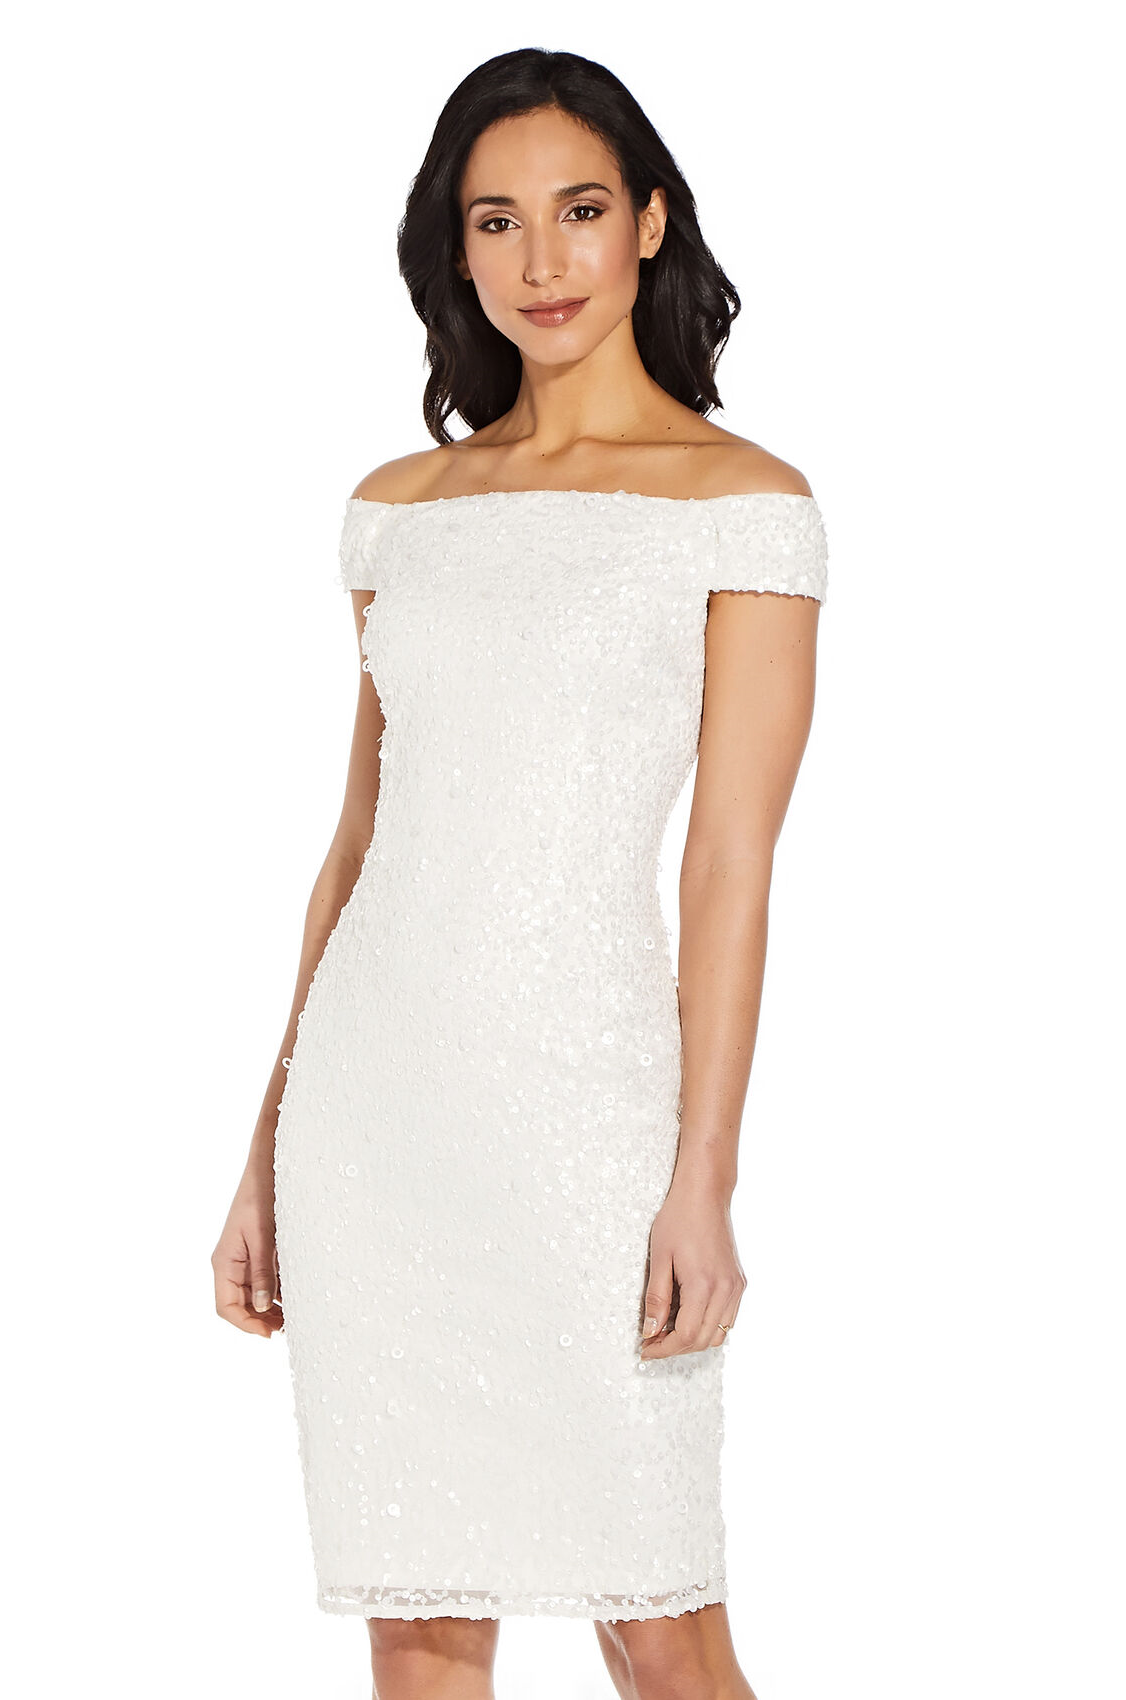 Caitlyn Reception Dress by Adrianna Papell - Ivory